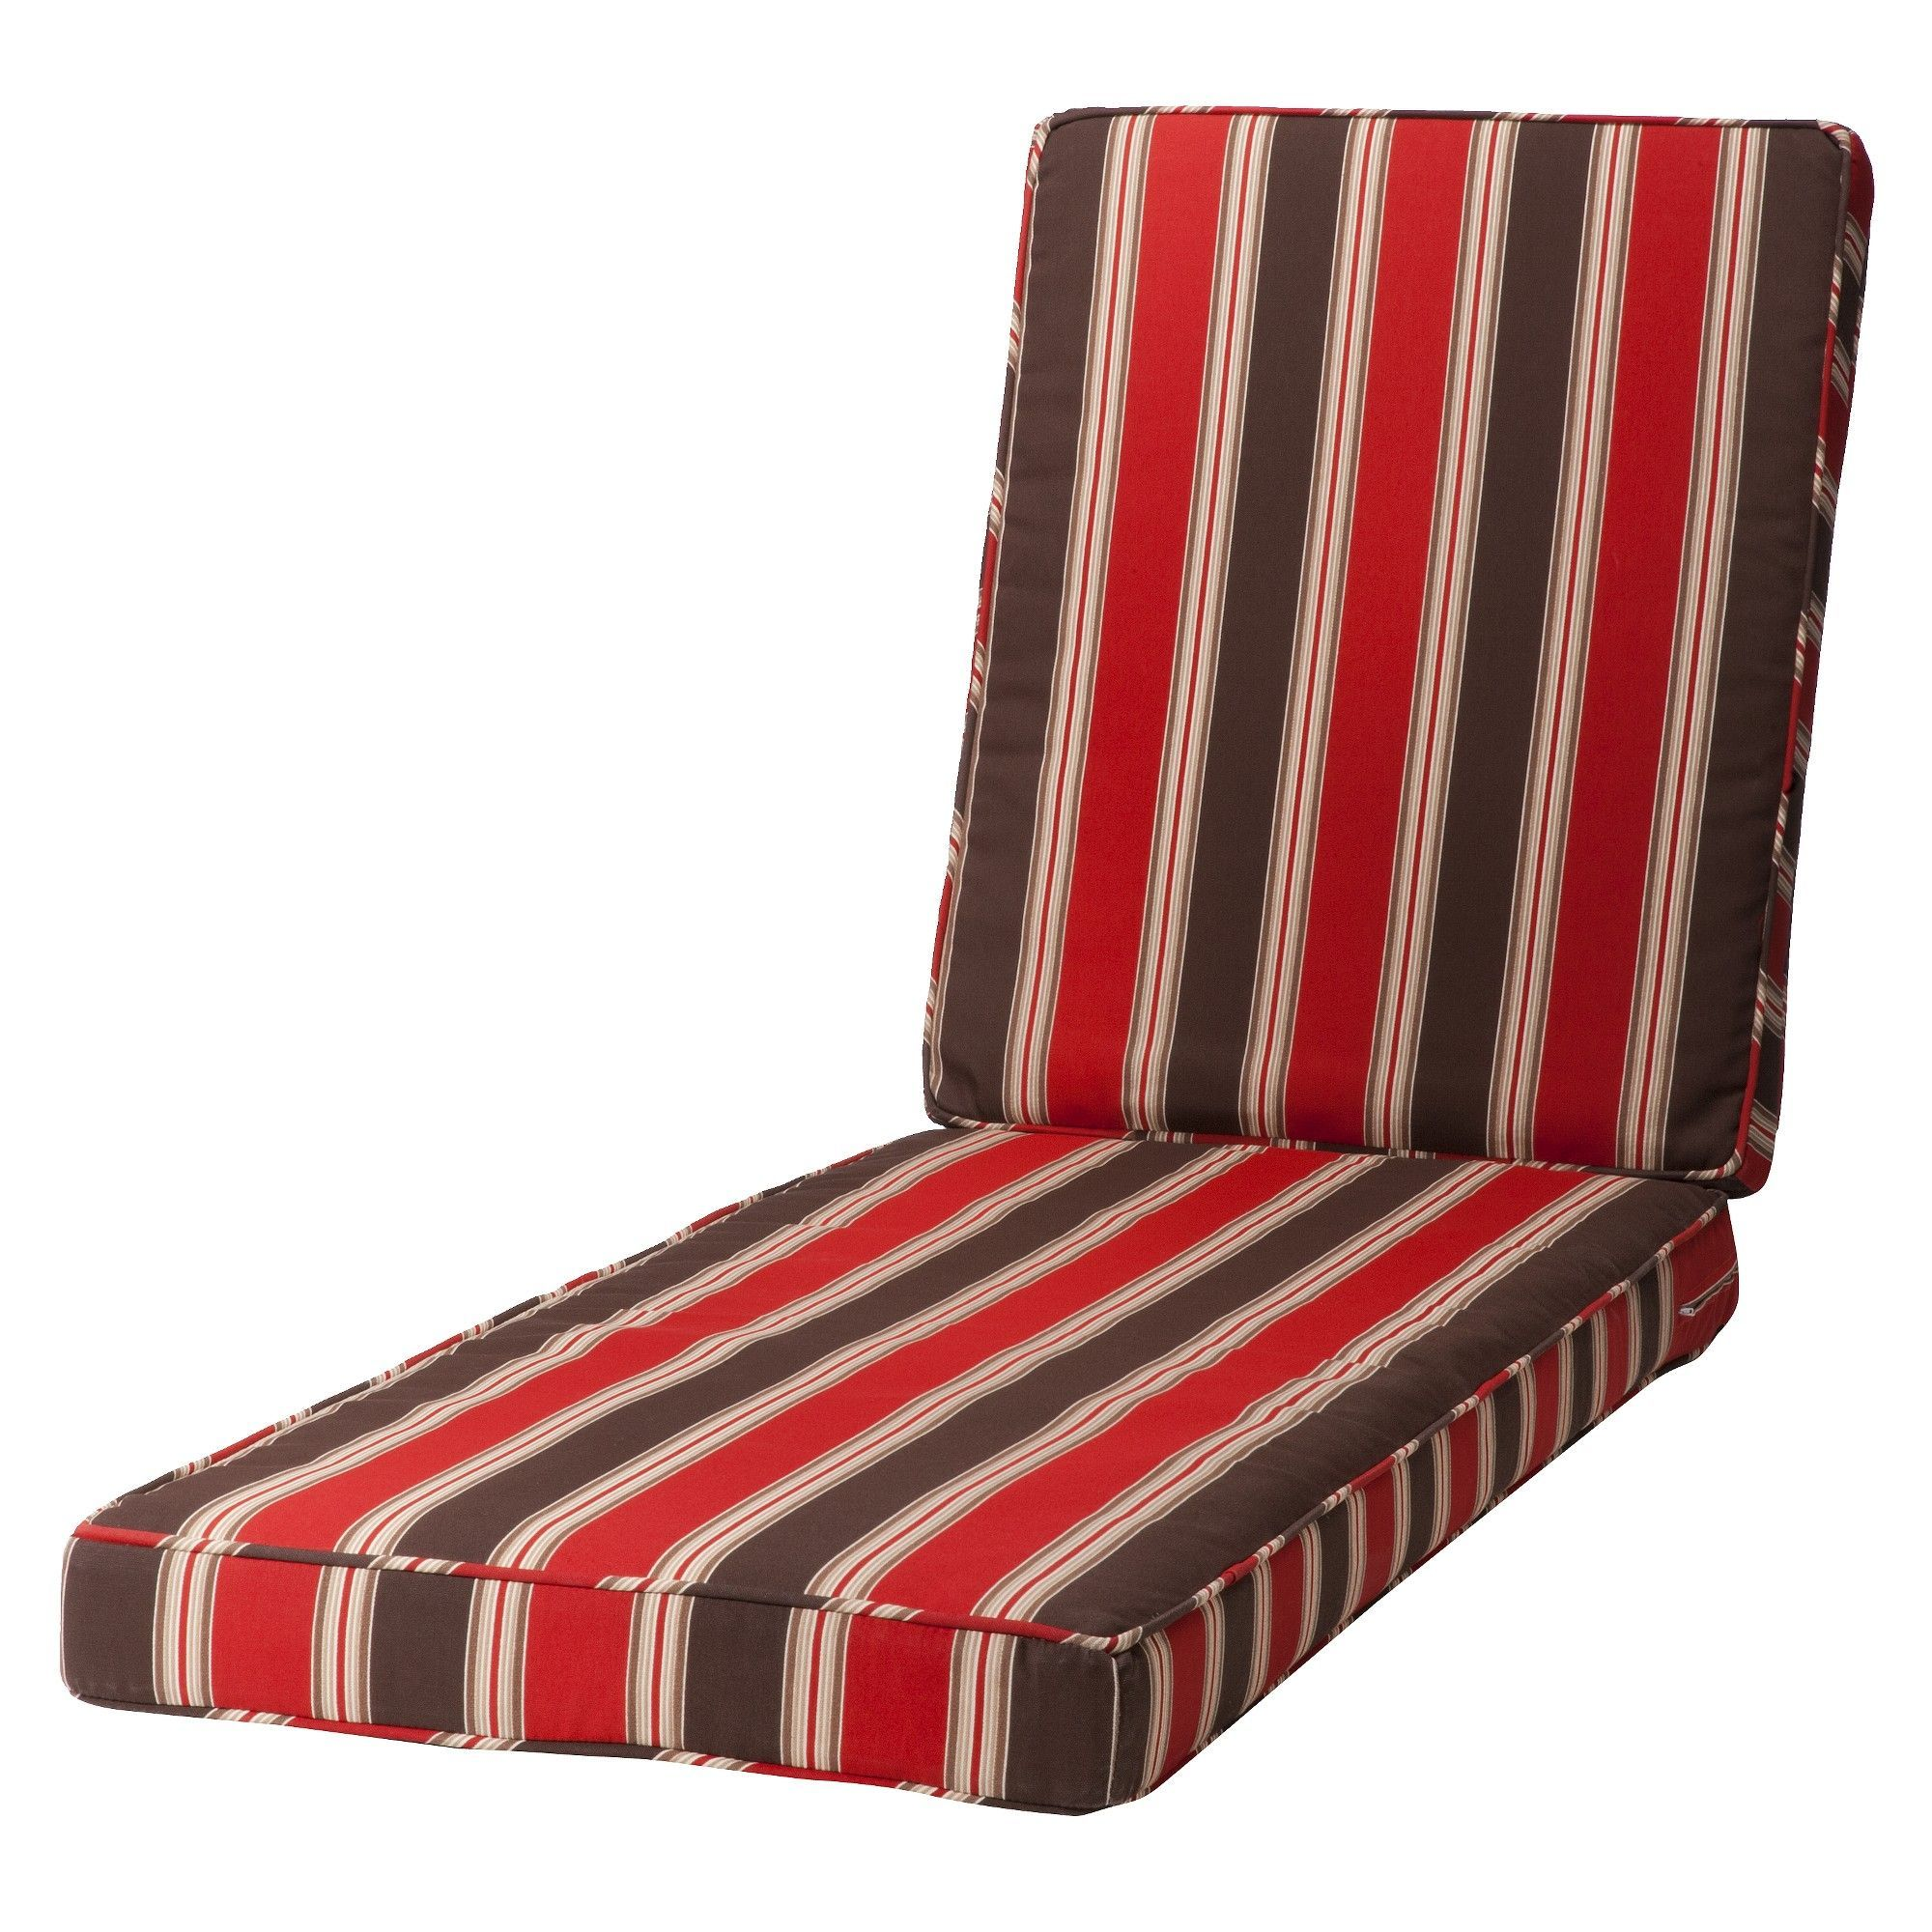 Rolston Outdoor Chaise Lounge Replacement Cushion Red